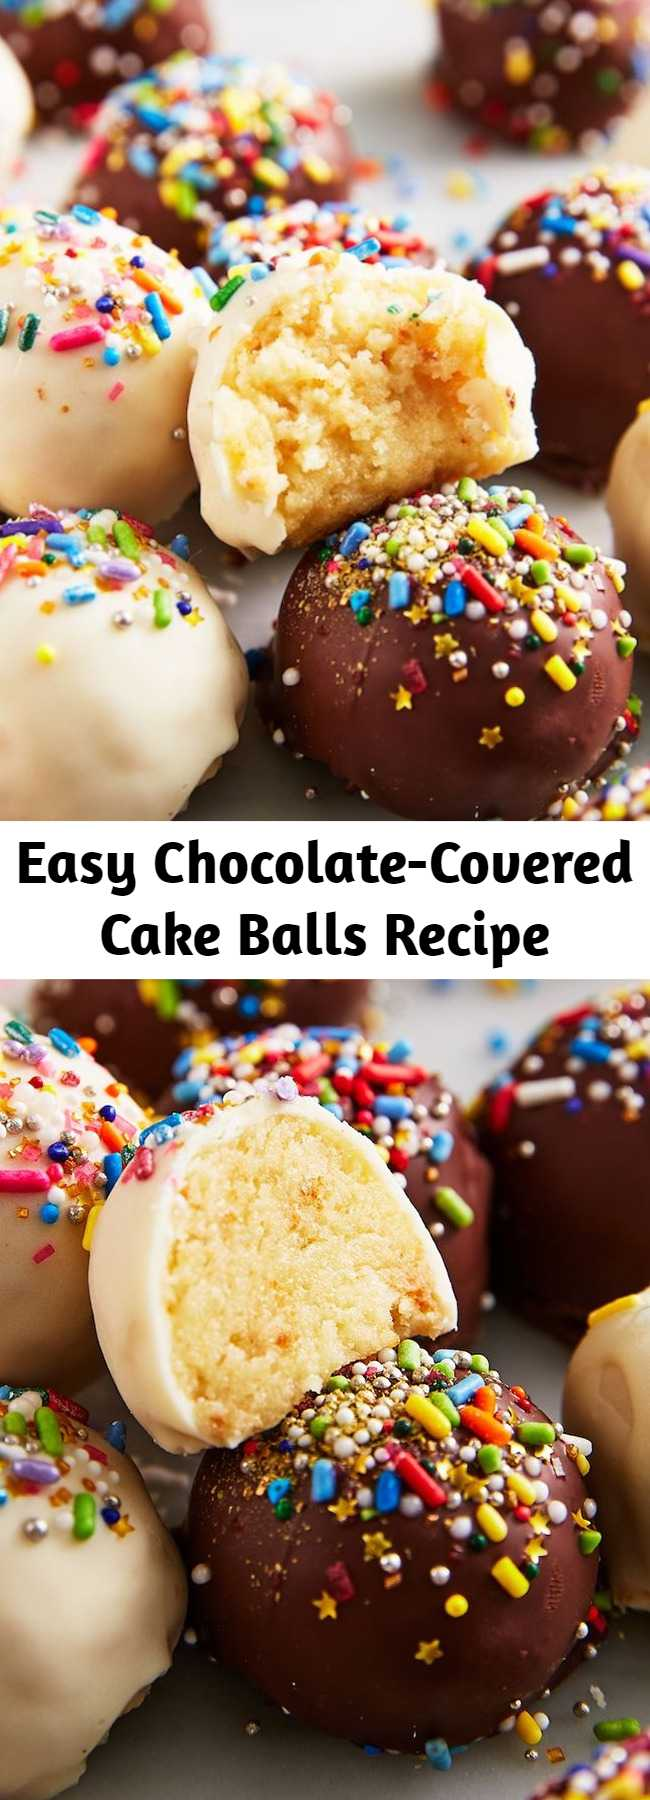 Easy Chocolate-Covered Cake Balls Recipe - You can use any type of cake for this recipe. But truthfully, we like starting with boxed mix. With the homemade buttercream, chocolate coating, and festive sprinkles, no one will notice or care.